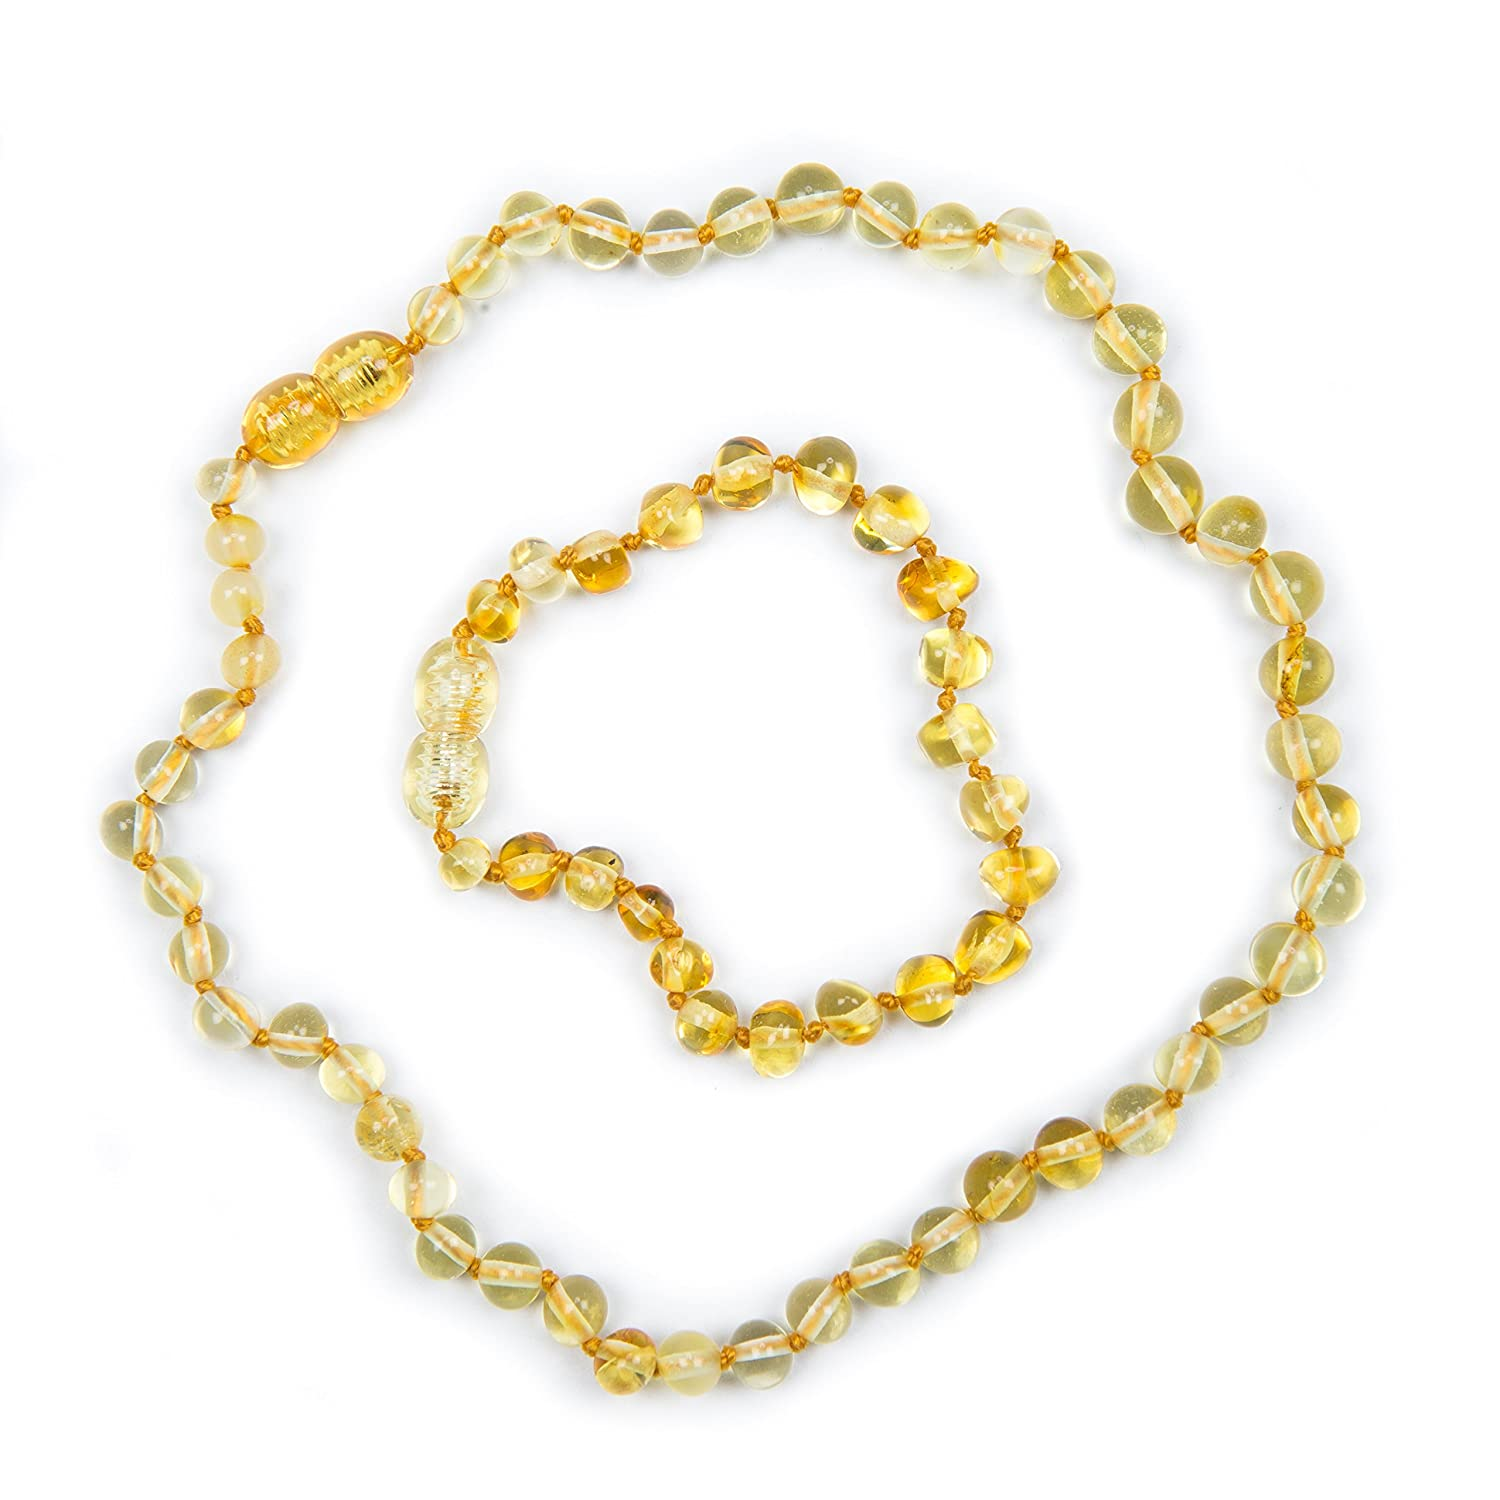 100% Genuine Lemon Necklace and Anklet Set. Variety Of Anklet Sizes. Free Delivery. Money Back Guarantee Baby J' s lemon set